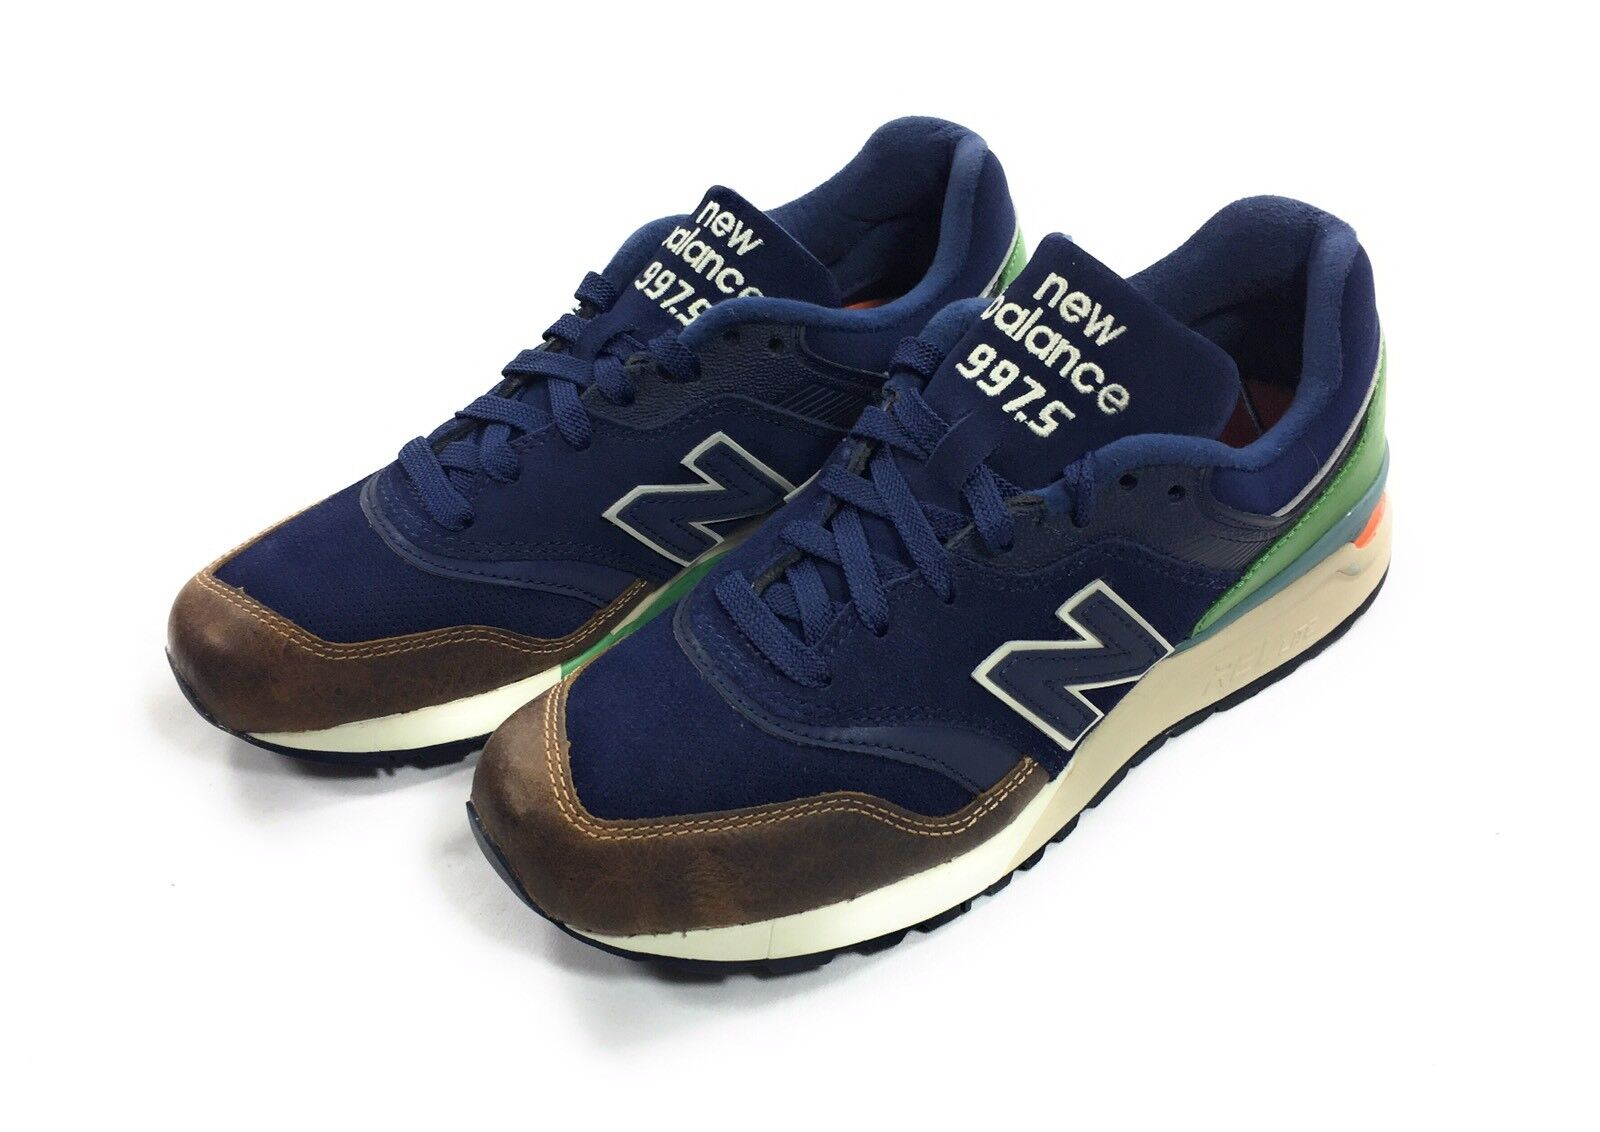 New Balance 997.5 REV Lite Running Shoes Athletic Sneakers Size 7 ML997HNA